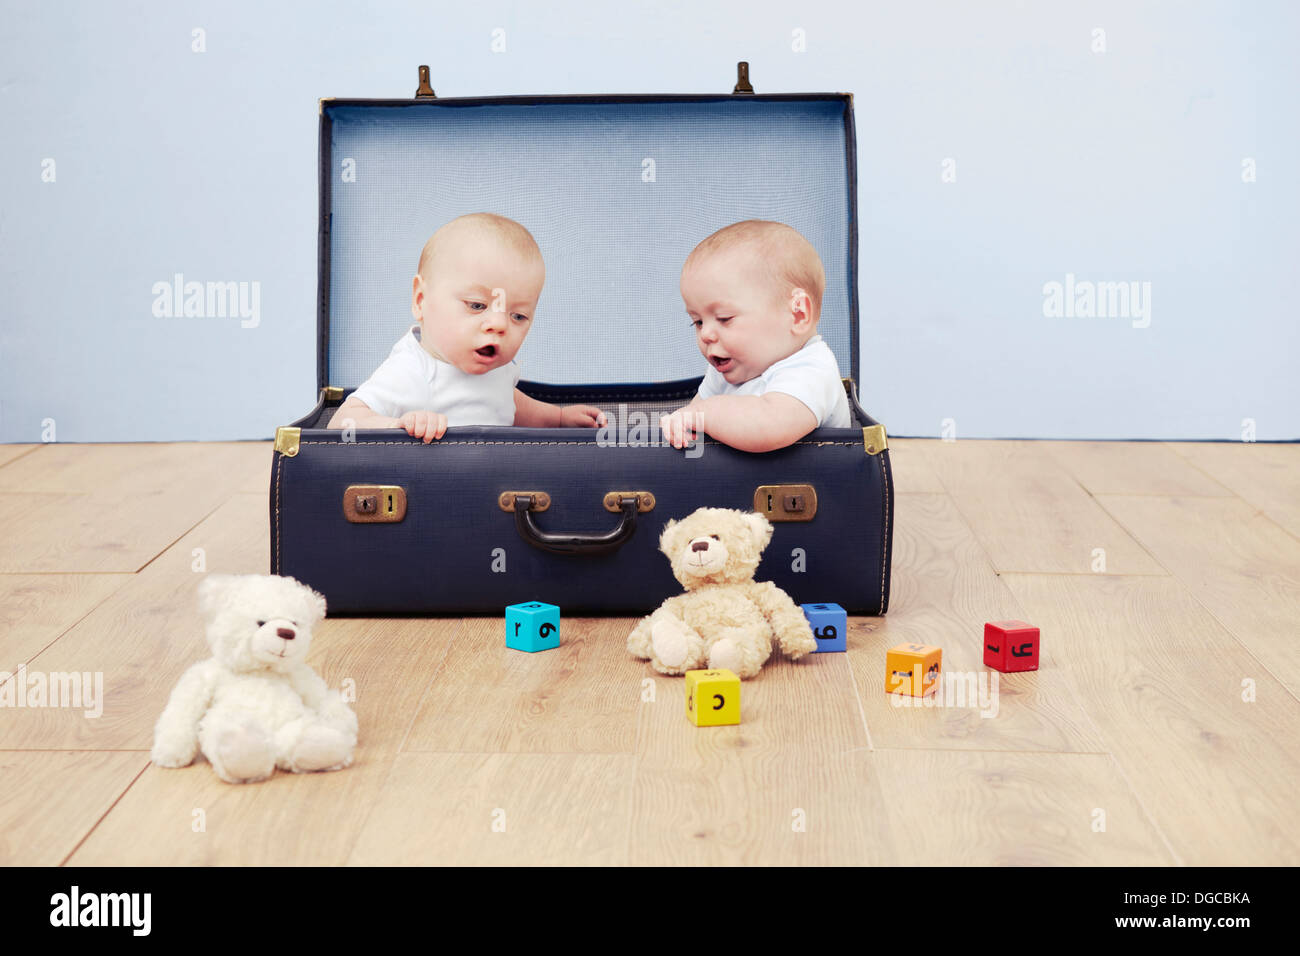 Two baby boys sitting in suitcase looking at toys - Stock Image